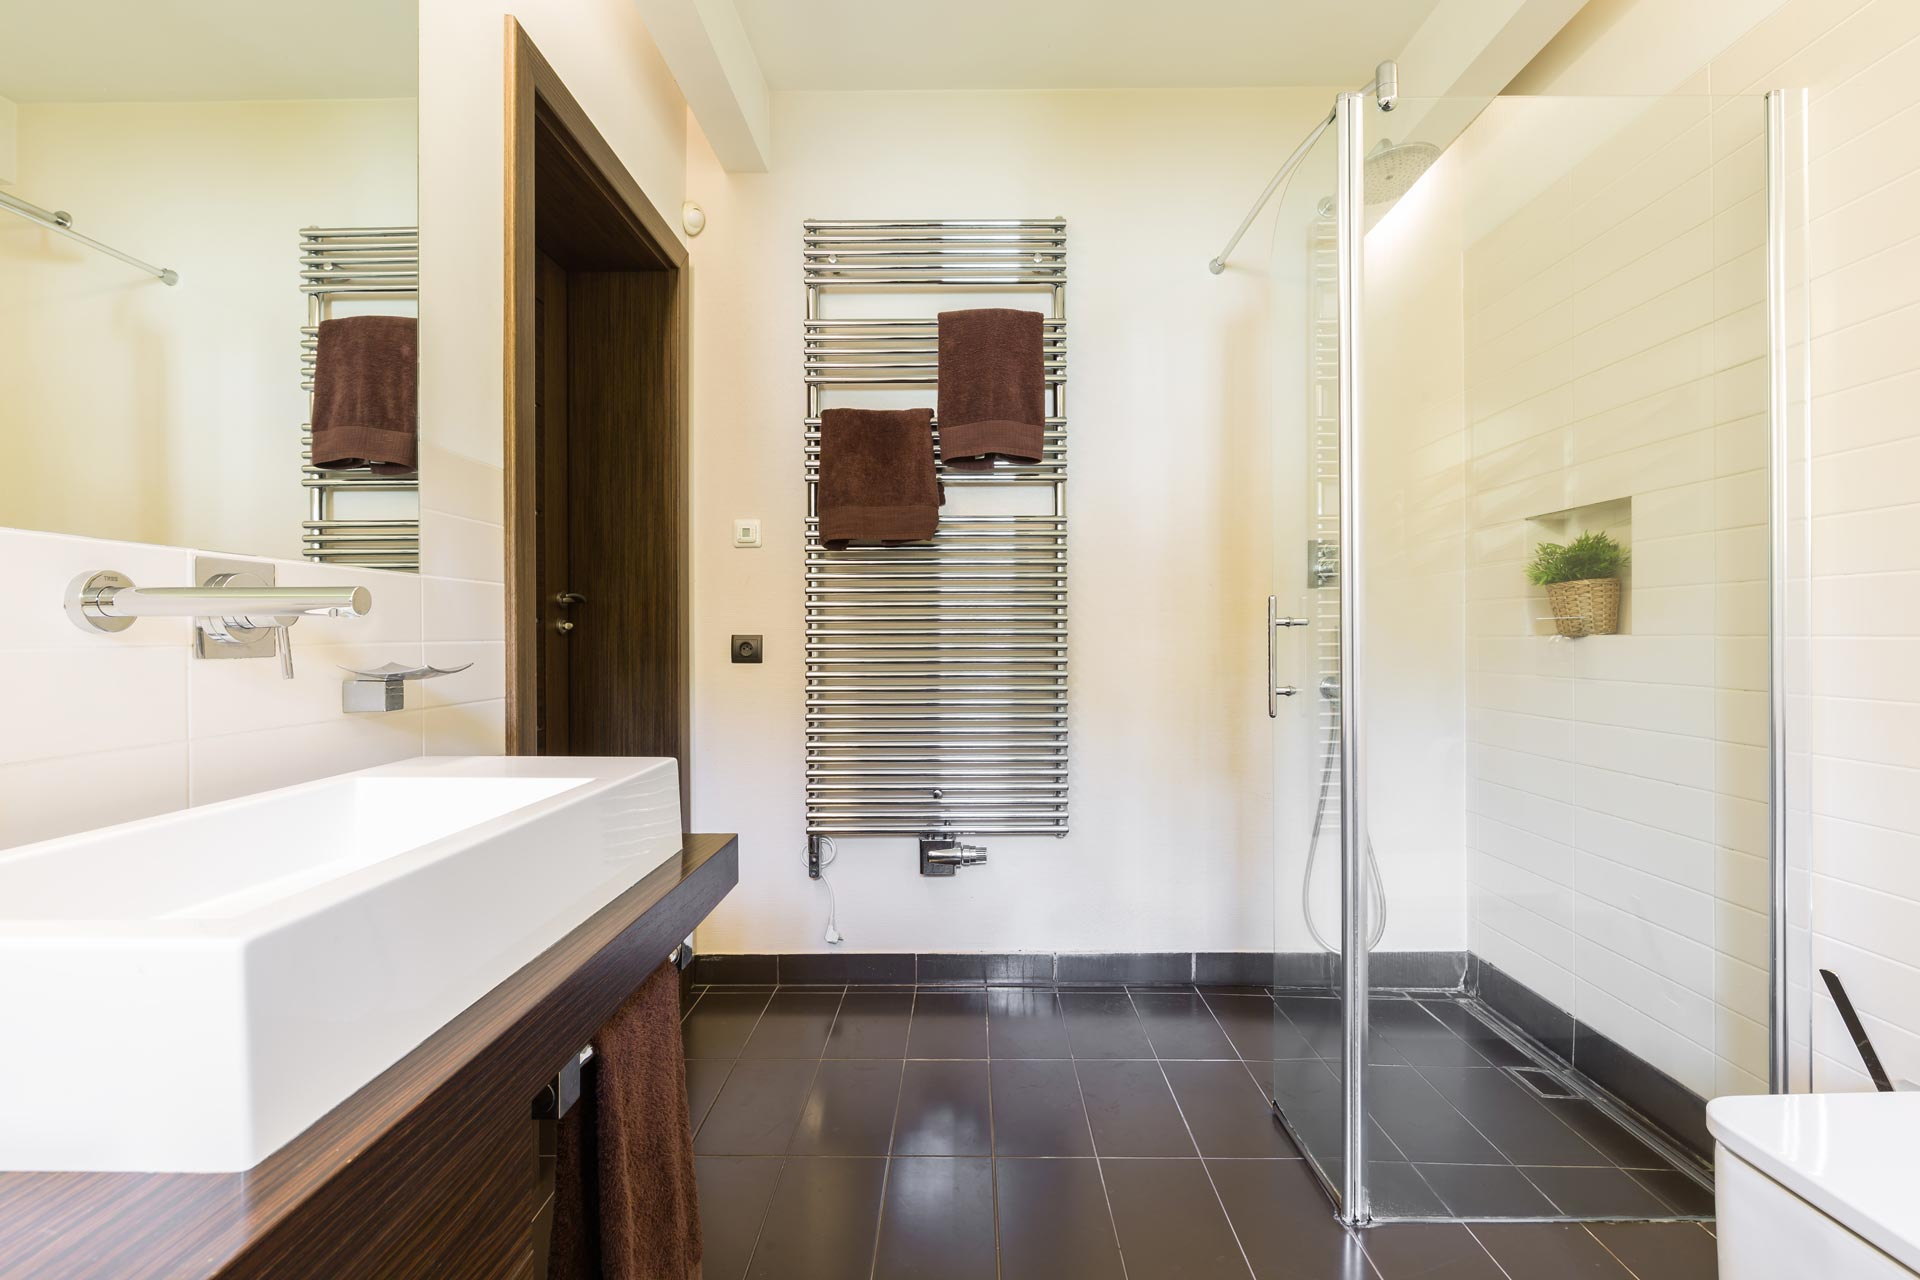 Benefits of Installing a Glass Shower